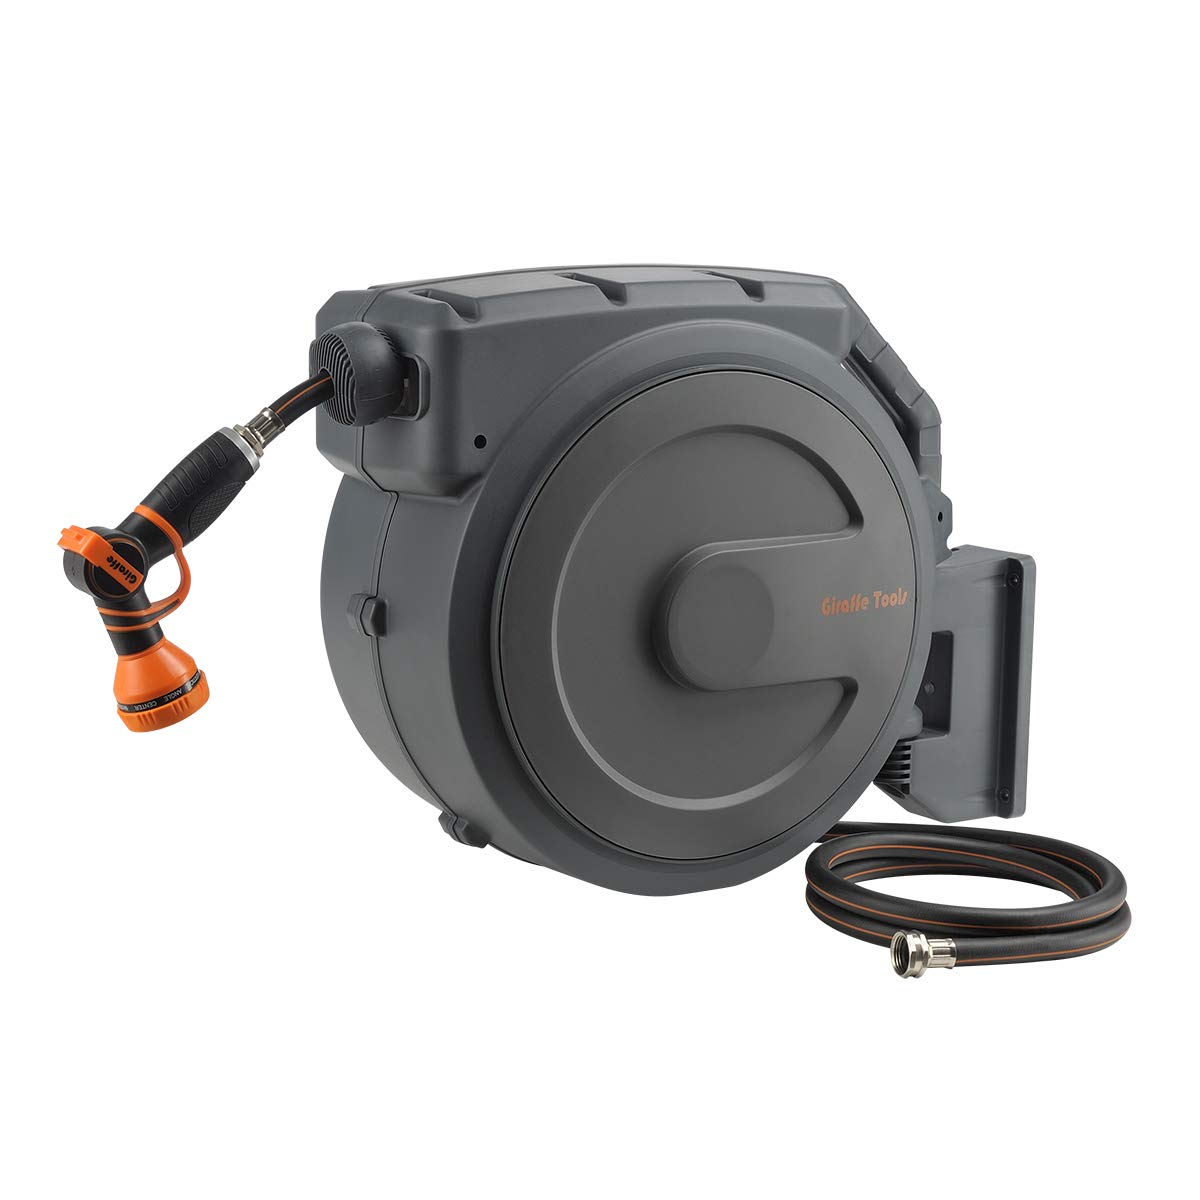 The Best garden hose reel - Our pick